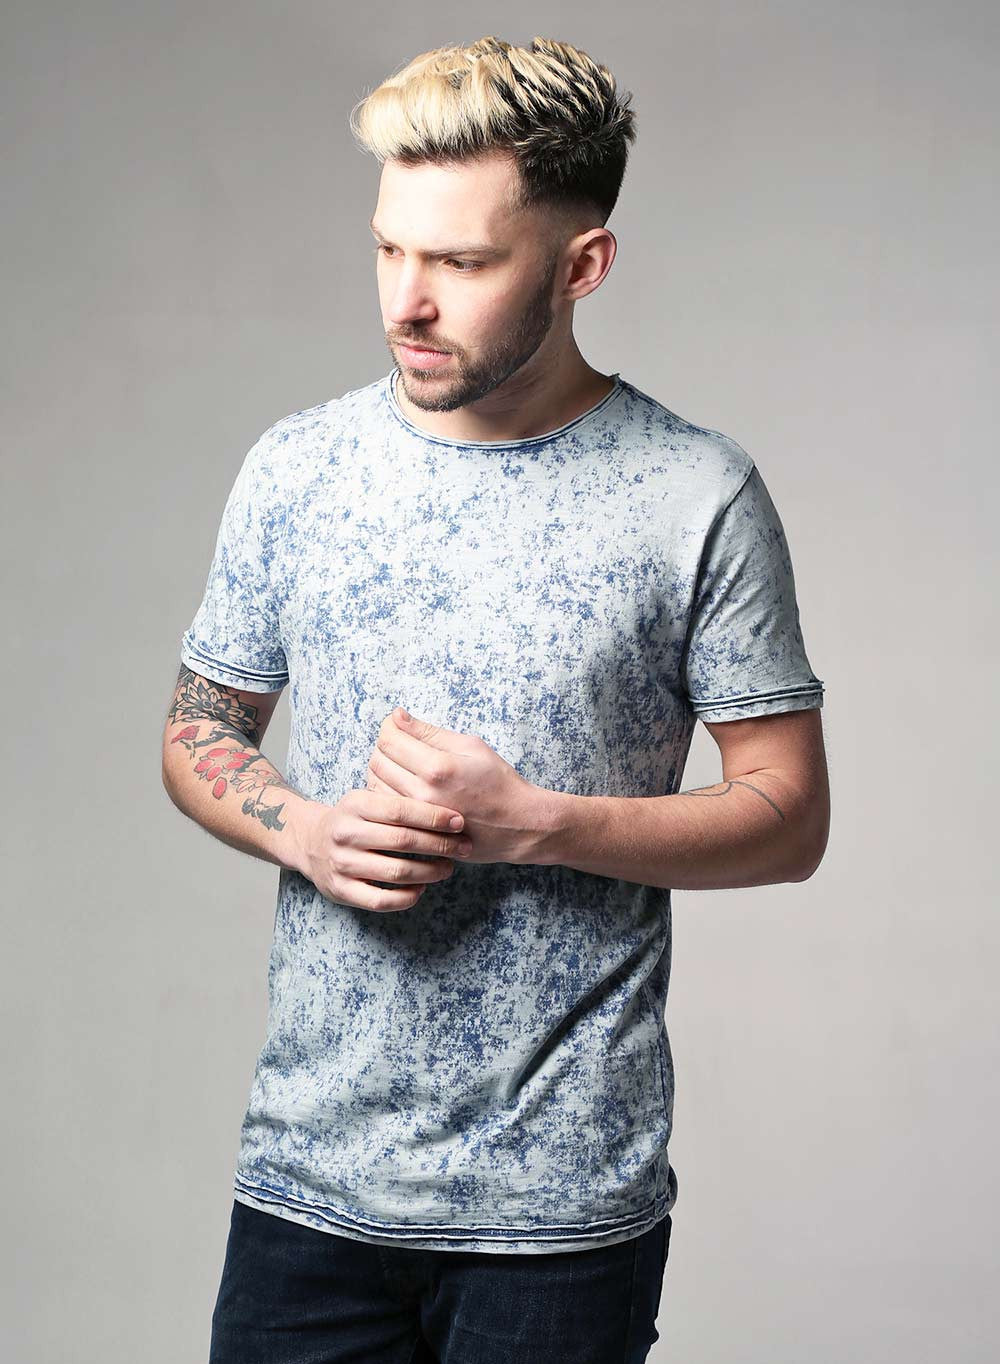 Retro Acid Wash Slim Fit T-shirt - LoveClothing.com - 1